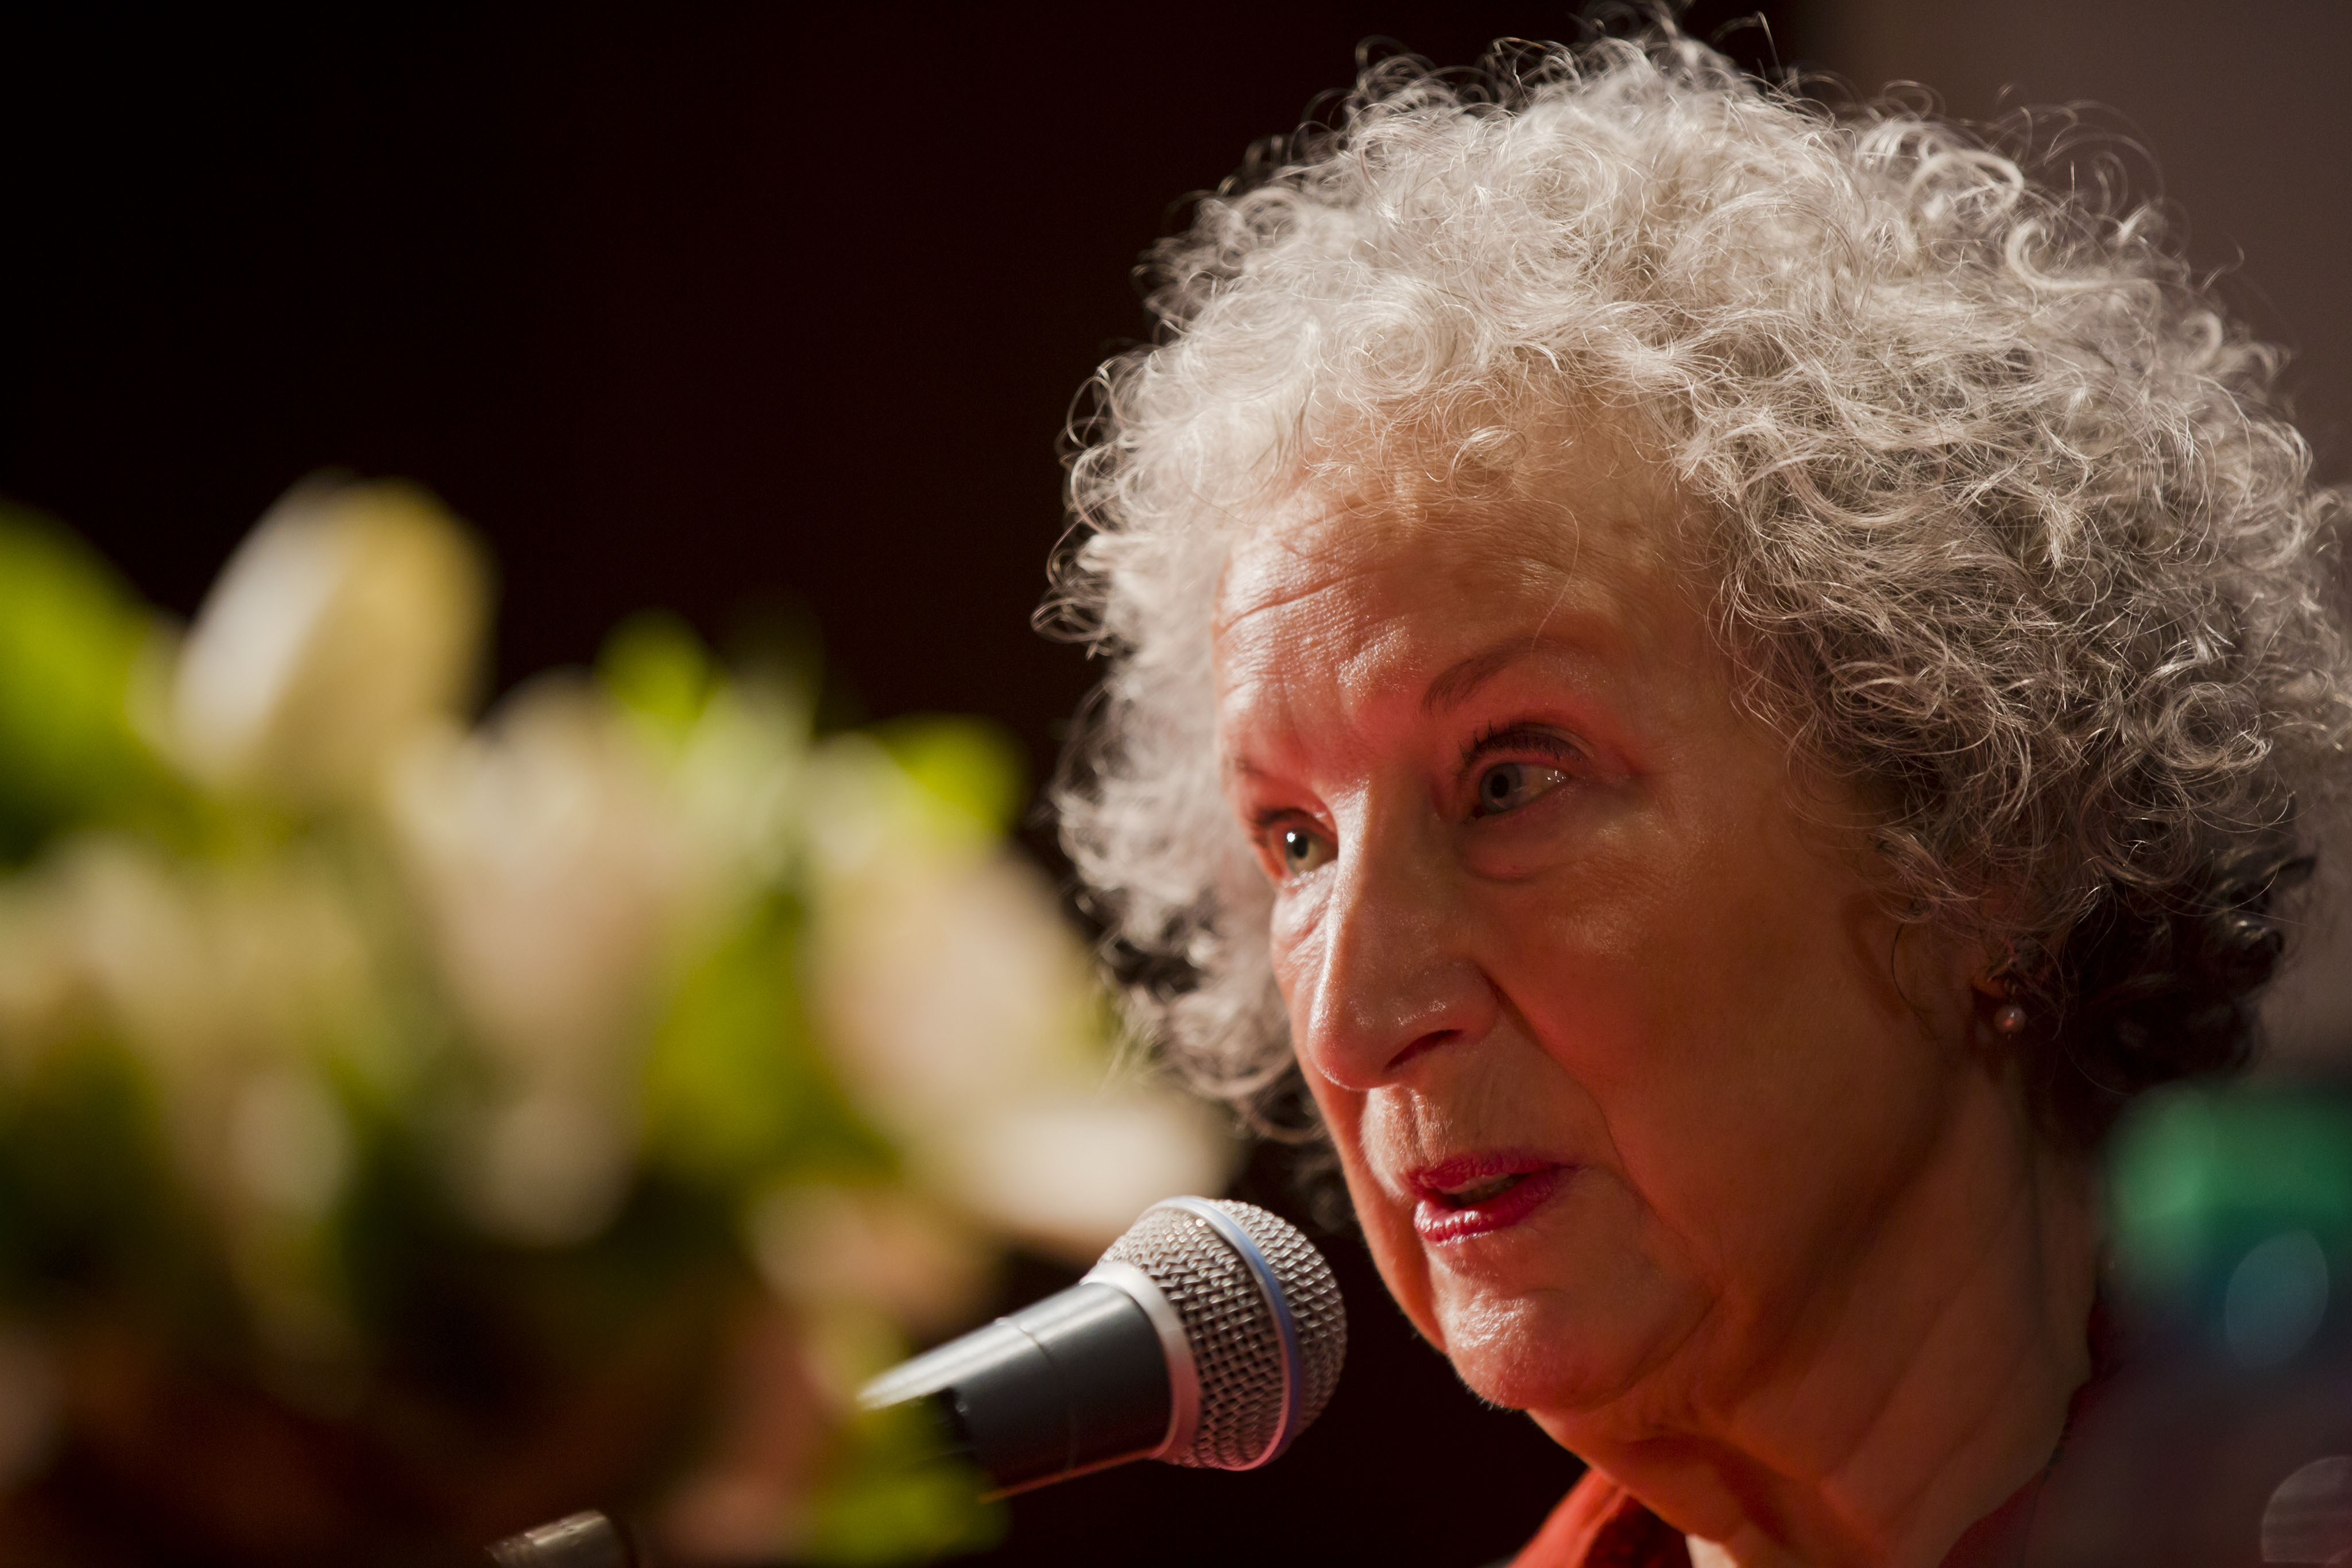 The Handmaid's Tale Author Margaret Atwood wrote Bodily Harm in 1981. Source: Commons.Wikimedia